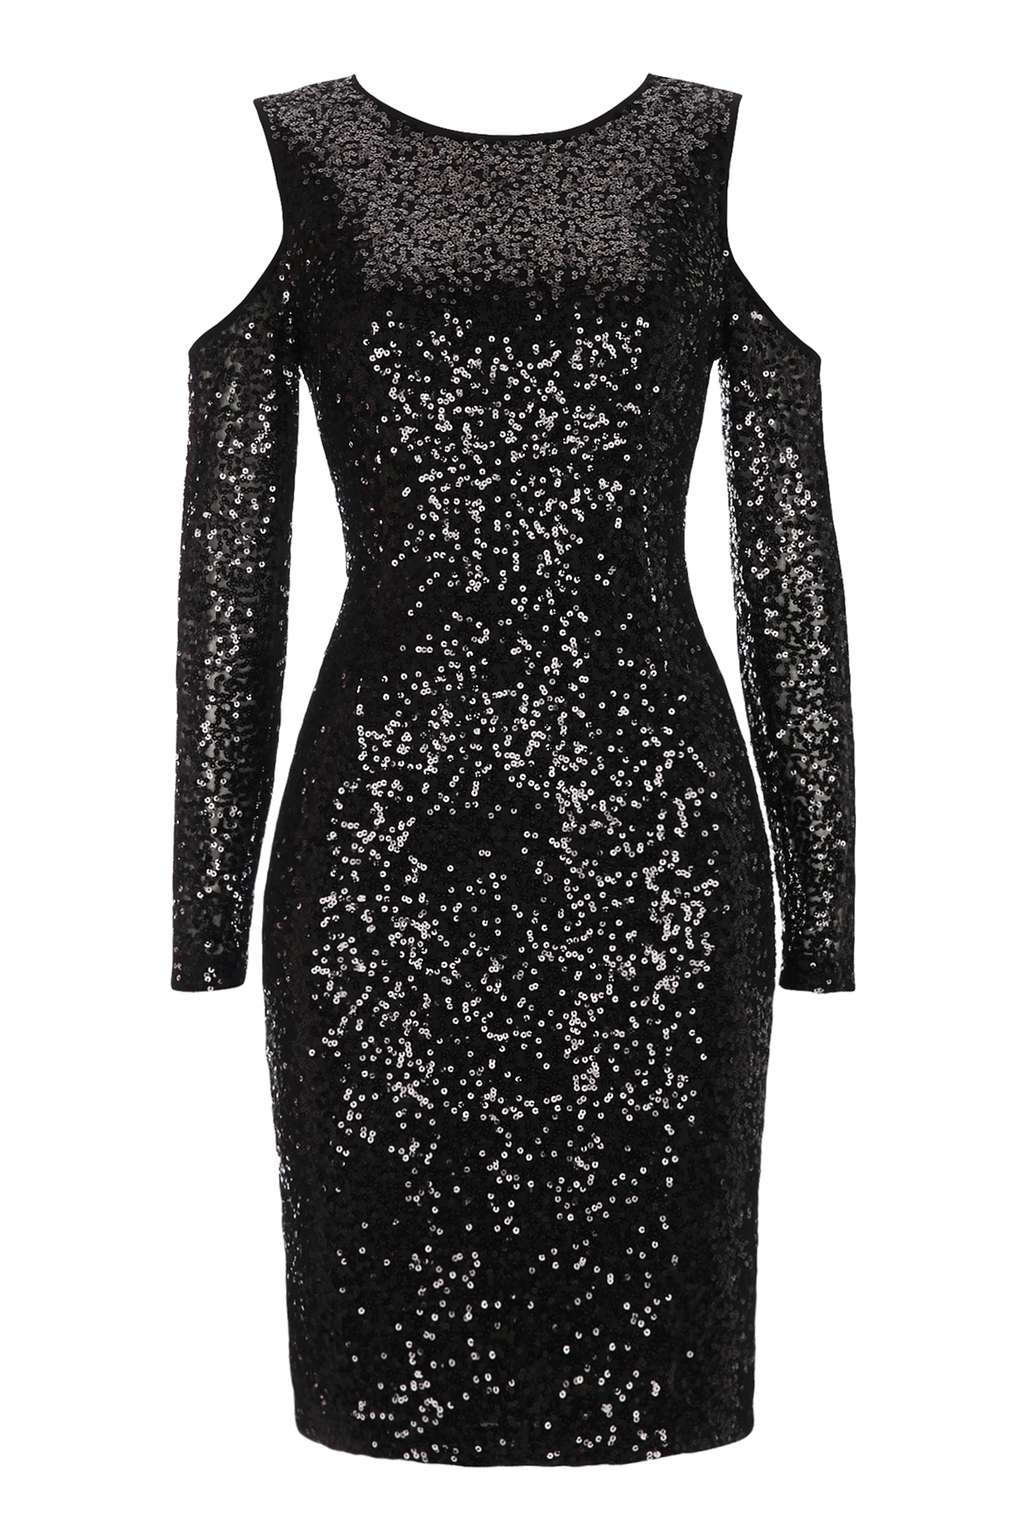 Wallis Black Sequin Embellished Cold Shoulder Shift Dress